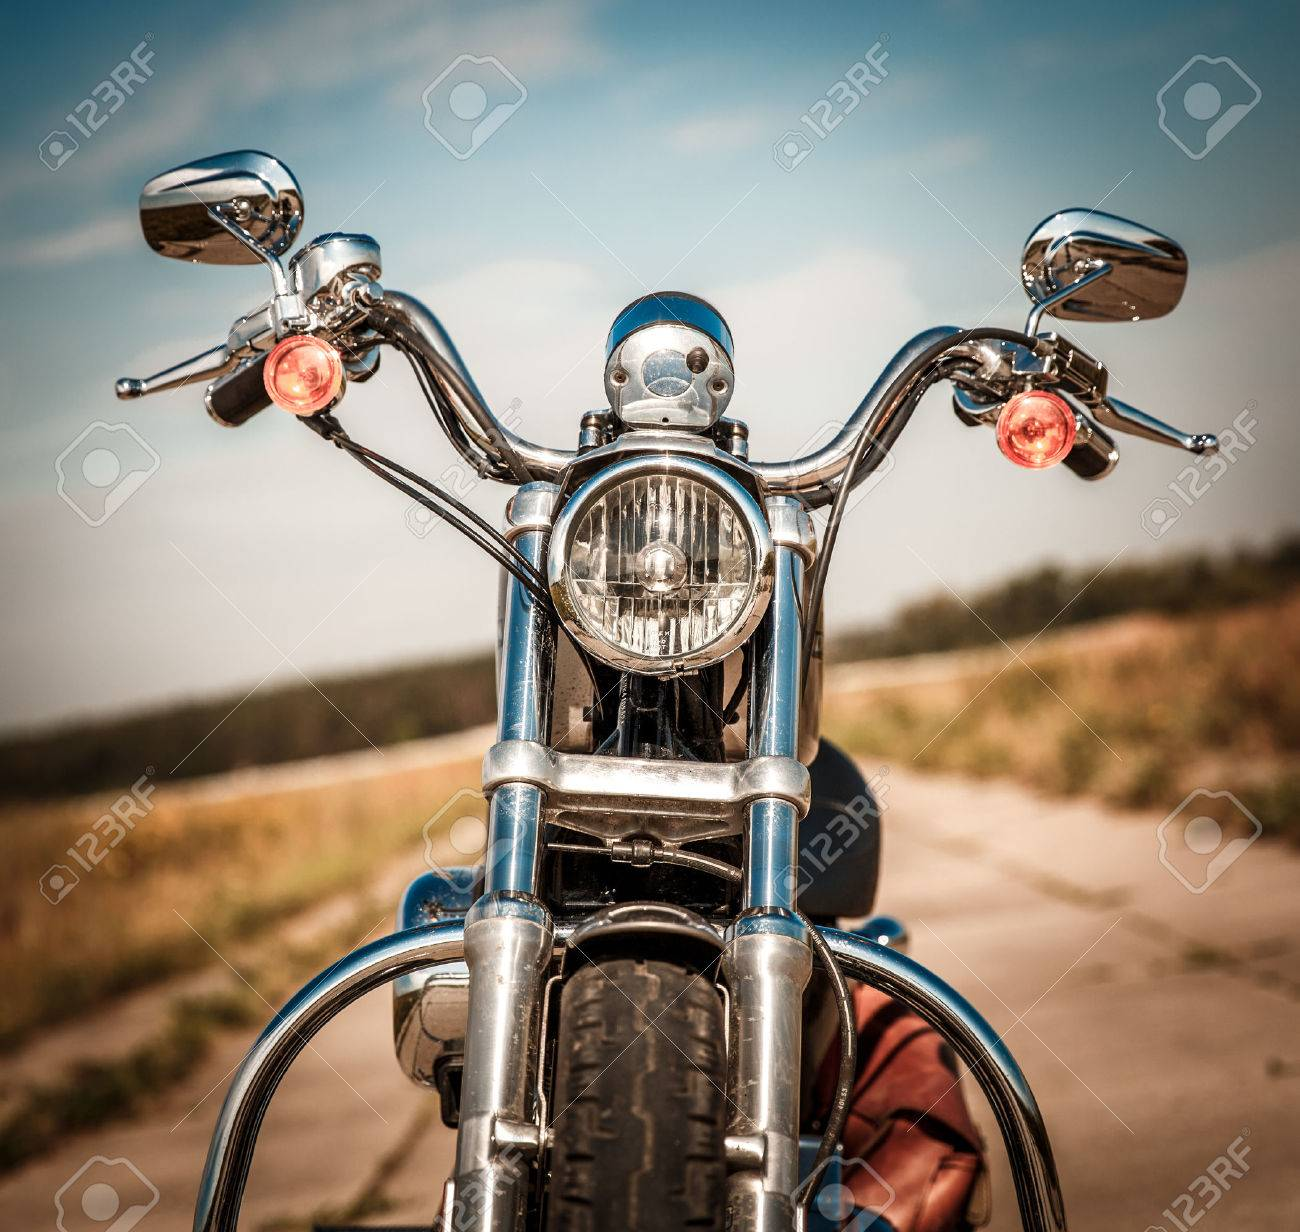 Motorcycle on the road - 51825788